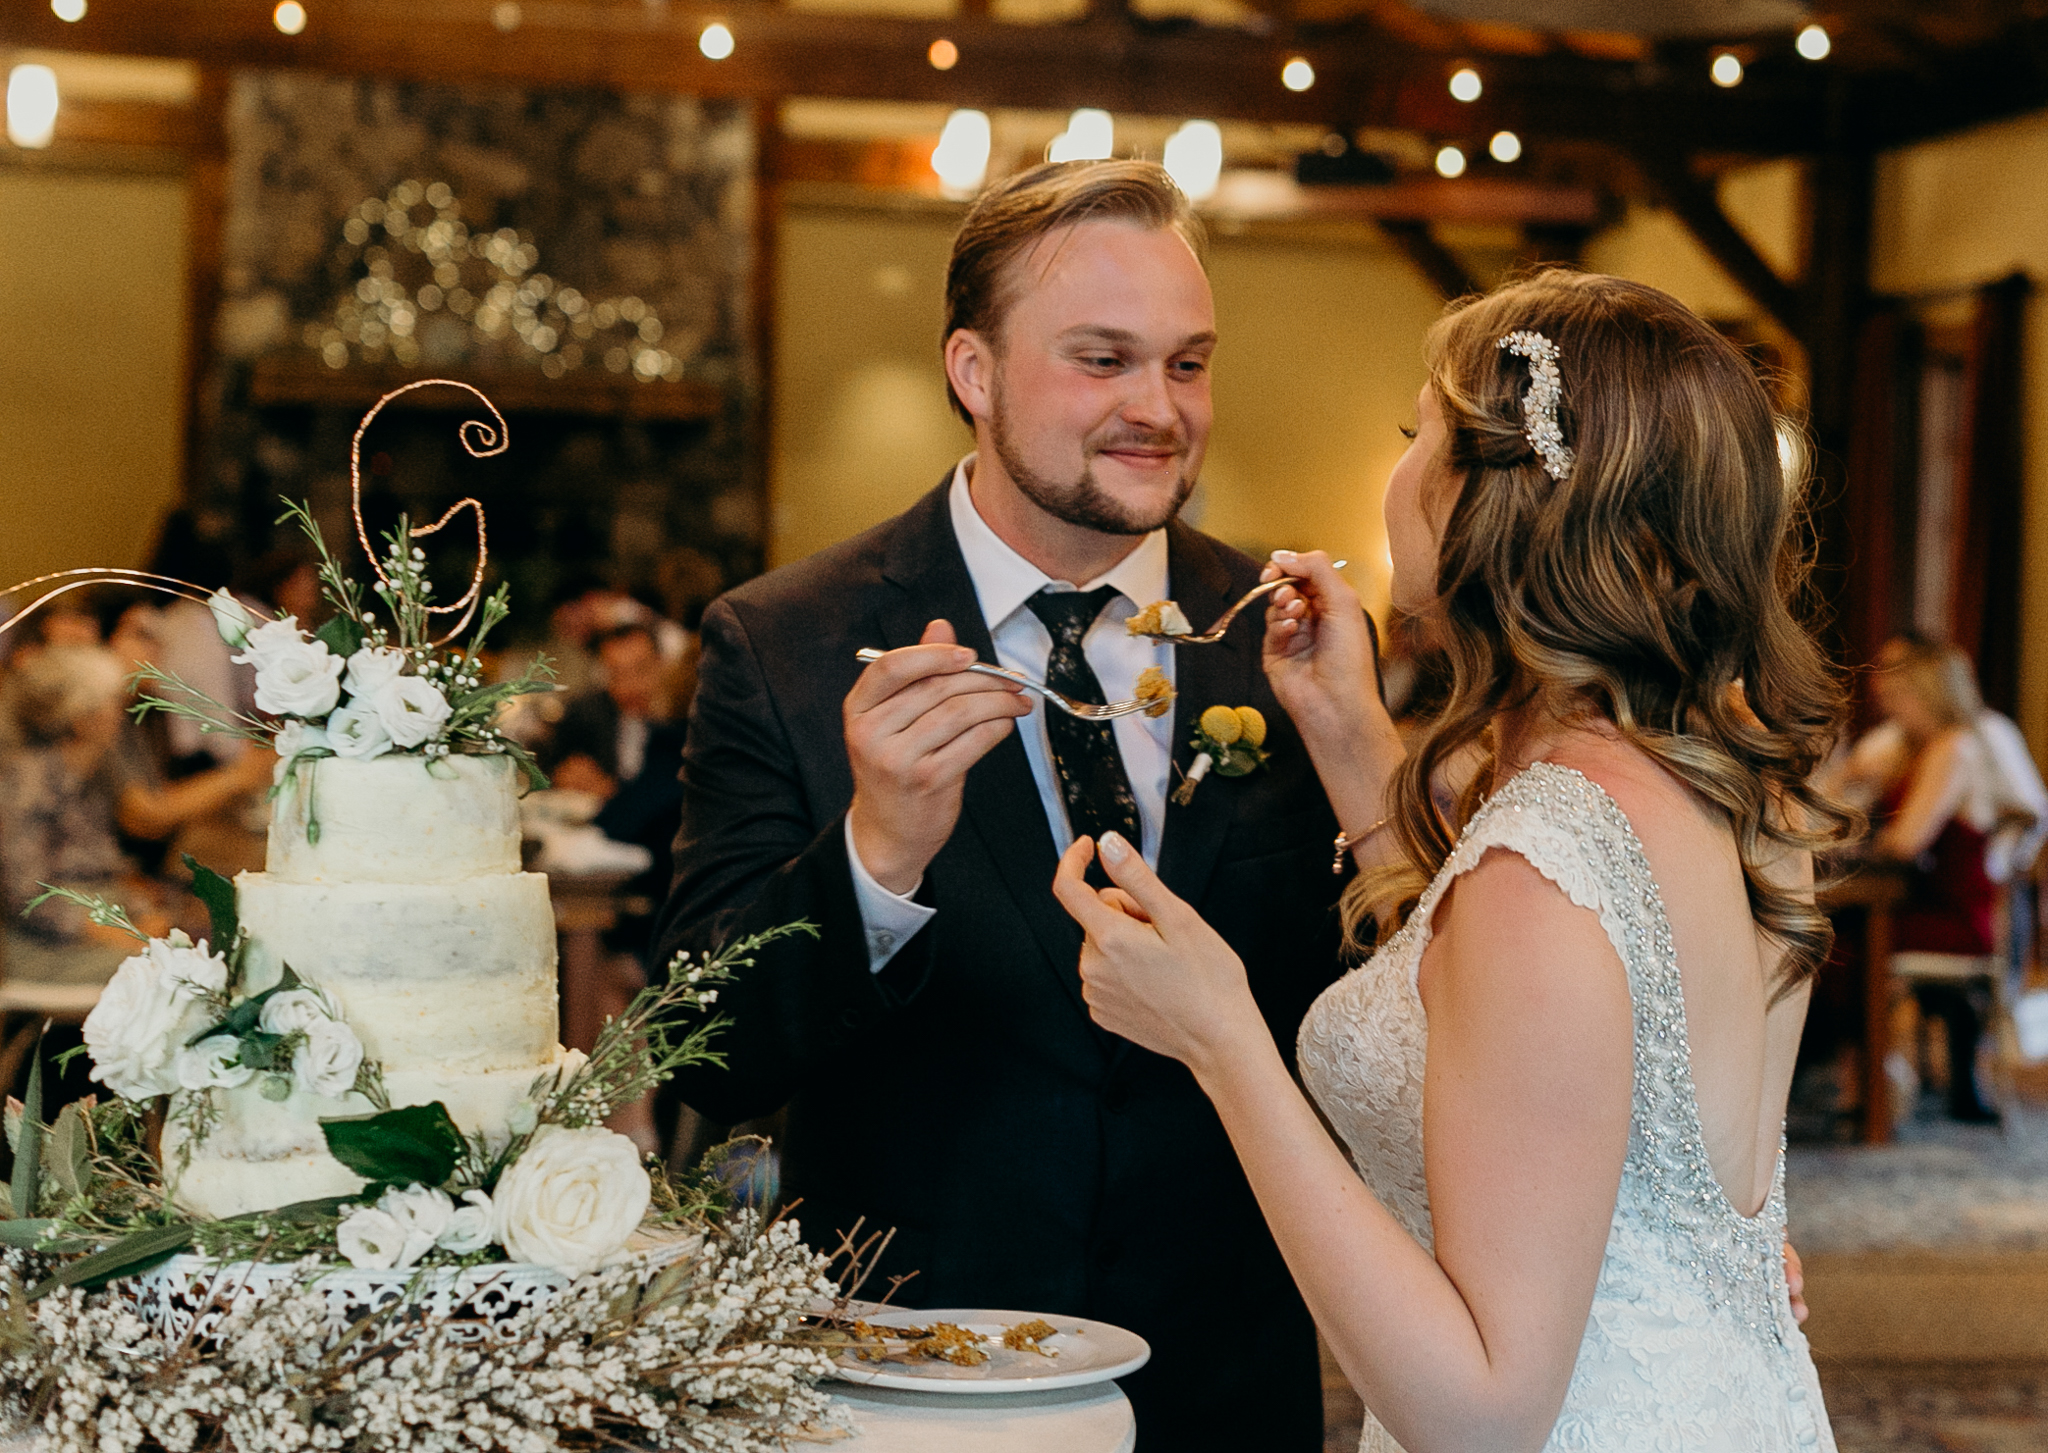 Bride and groom cut cake at Silvertip Resort Wedding reception